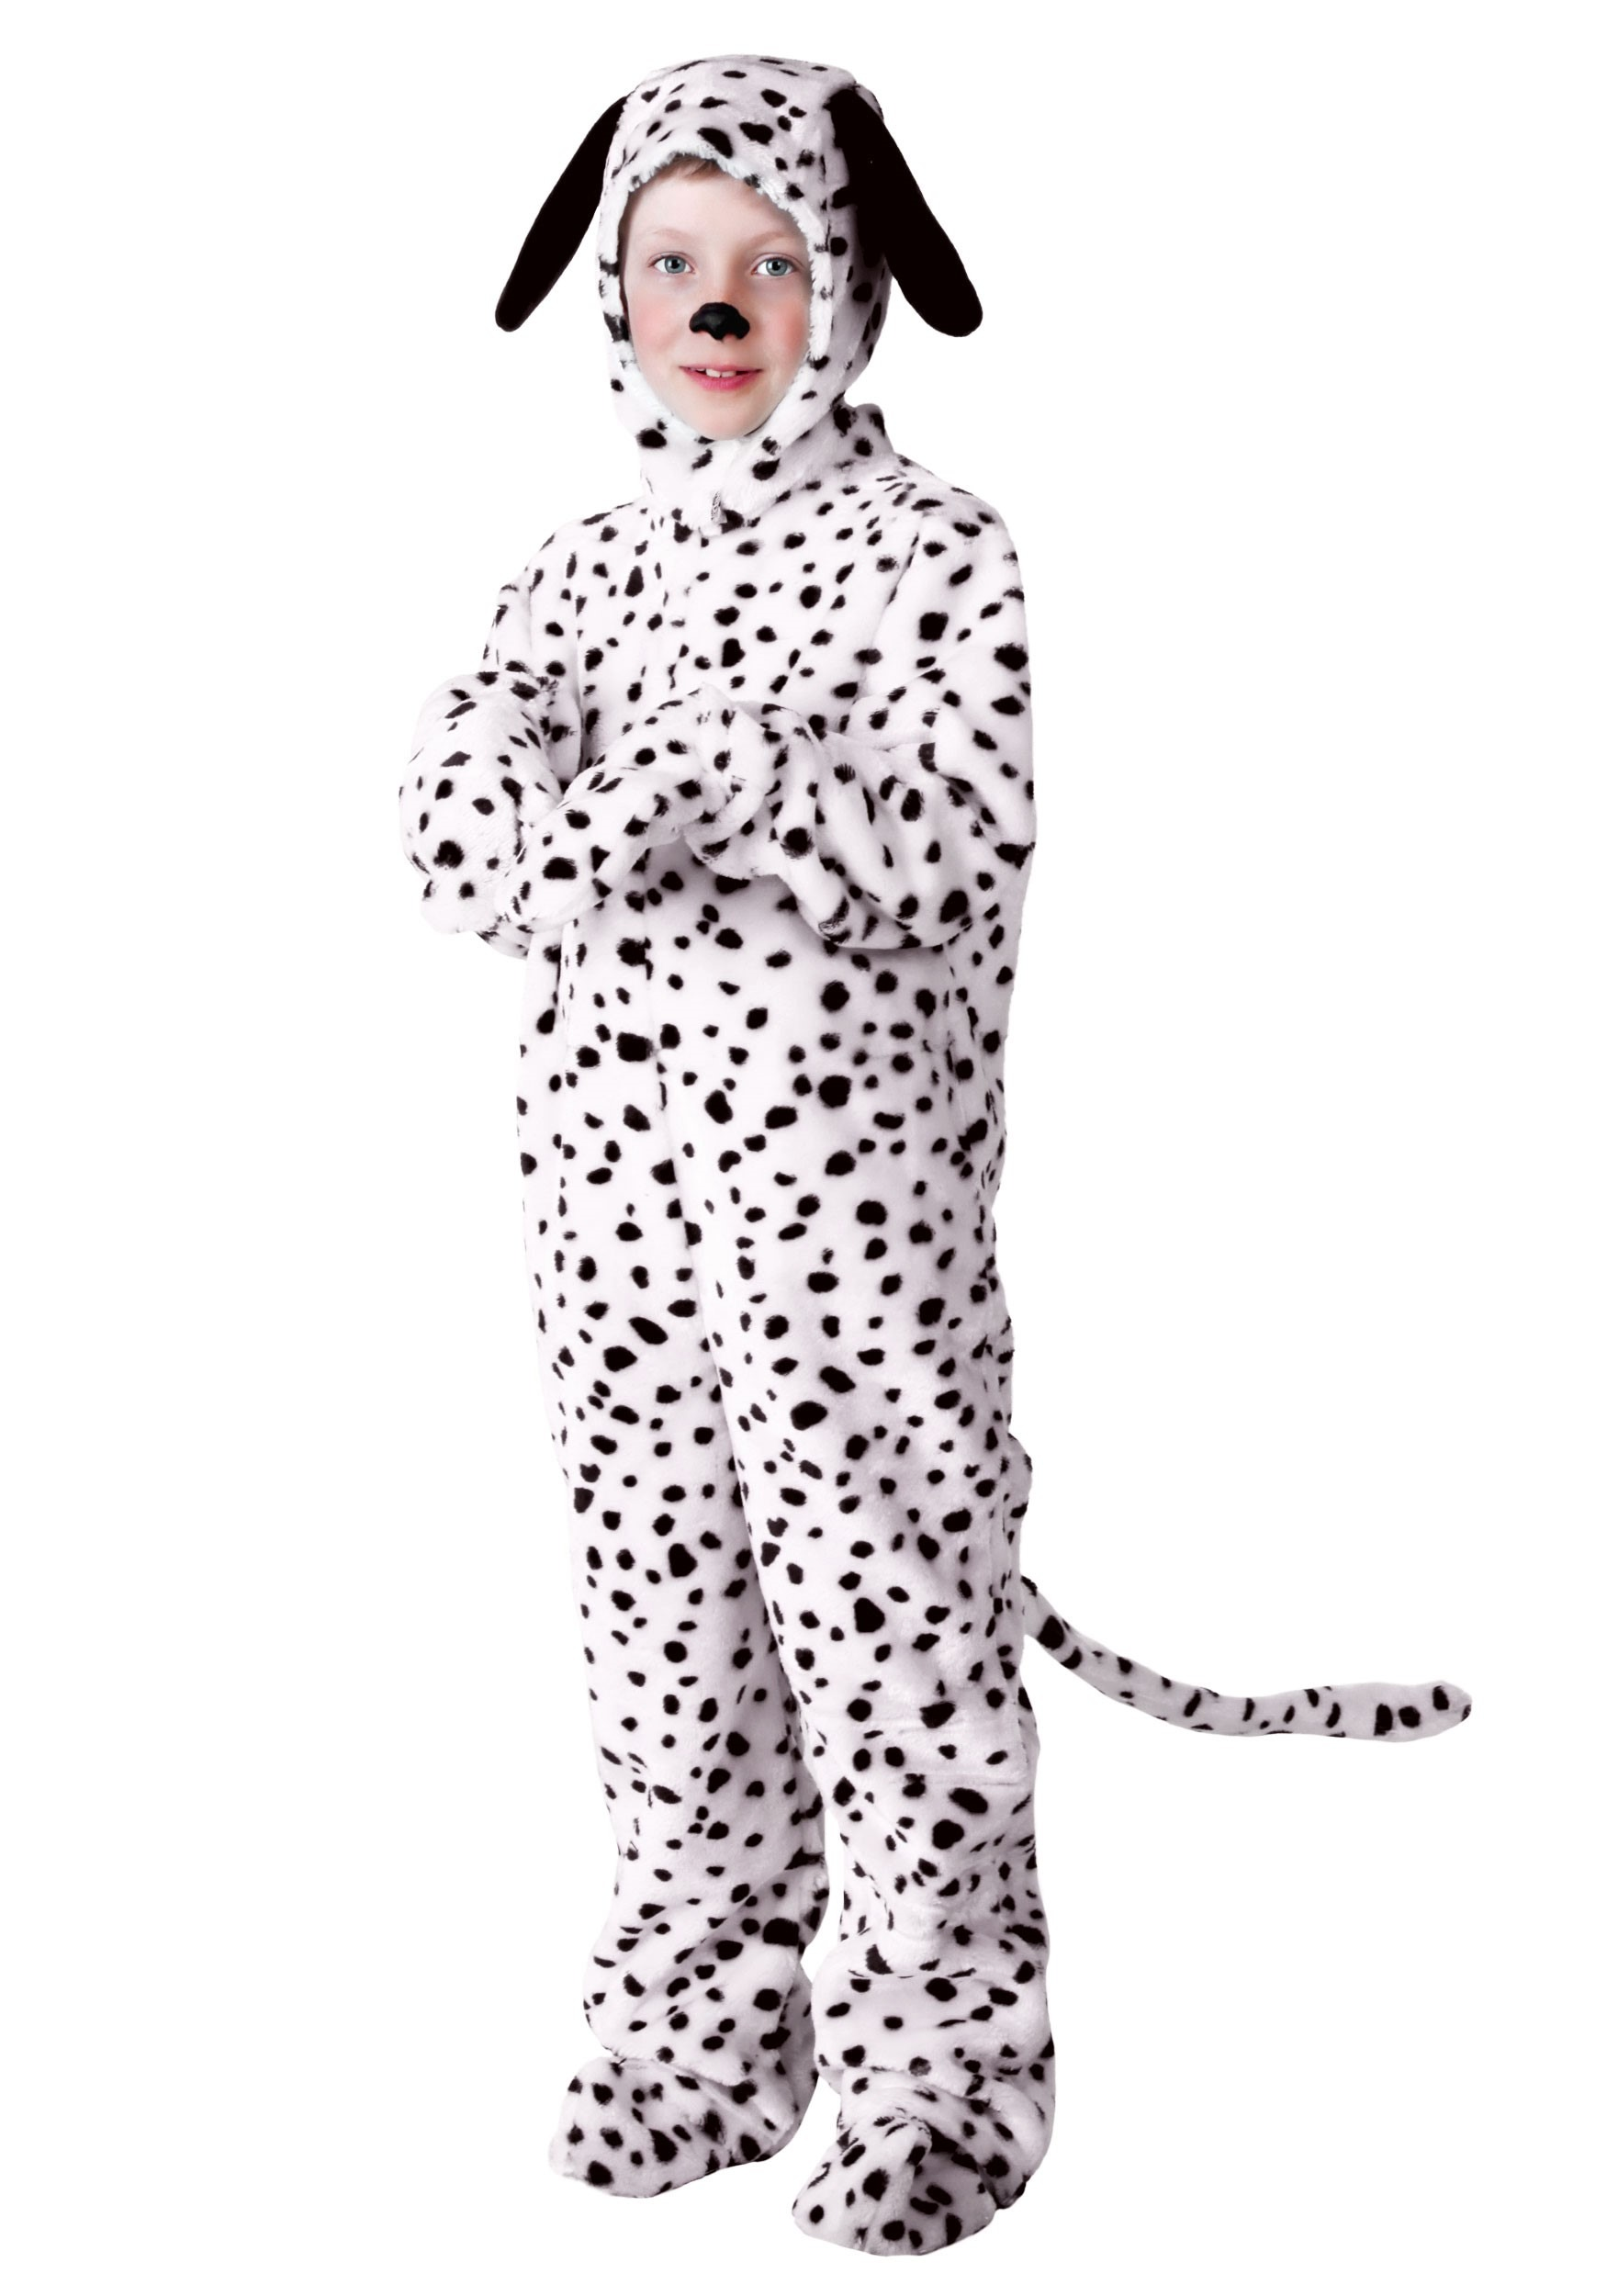 Kids Dalmatian Costume  sc 1 st  Halloween Costumes & Dog Costumes For Kids u0026 Adults - HalloweenCostumes.com